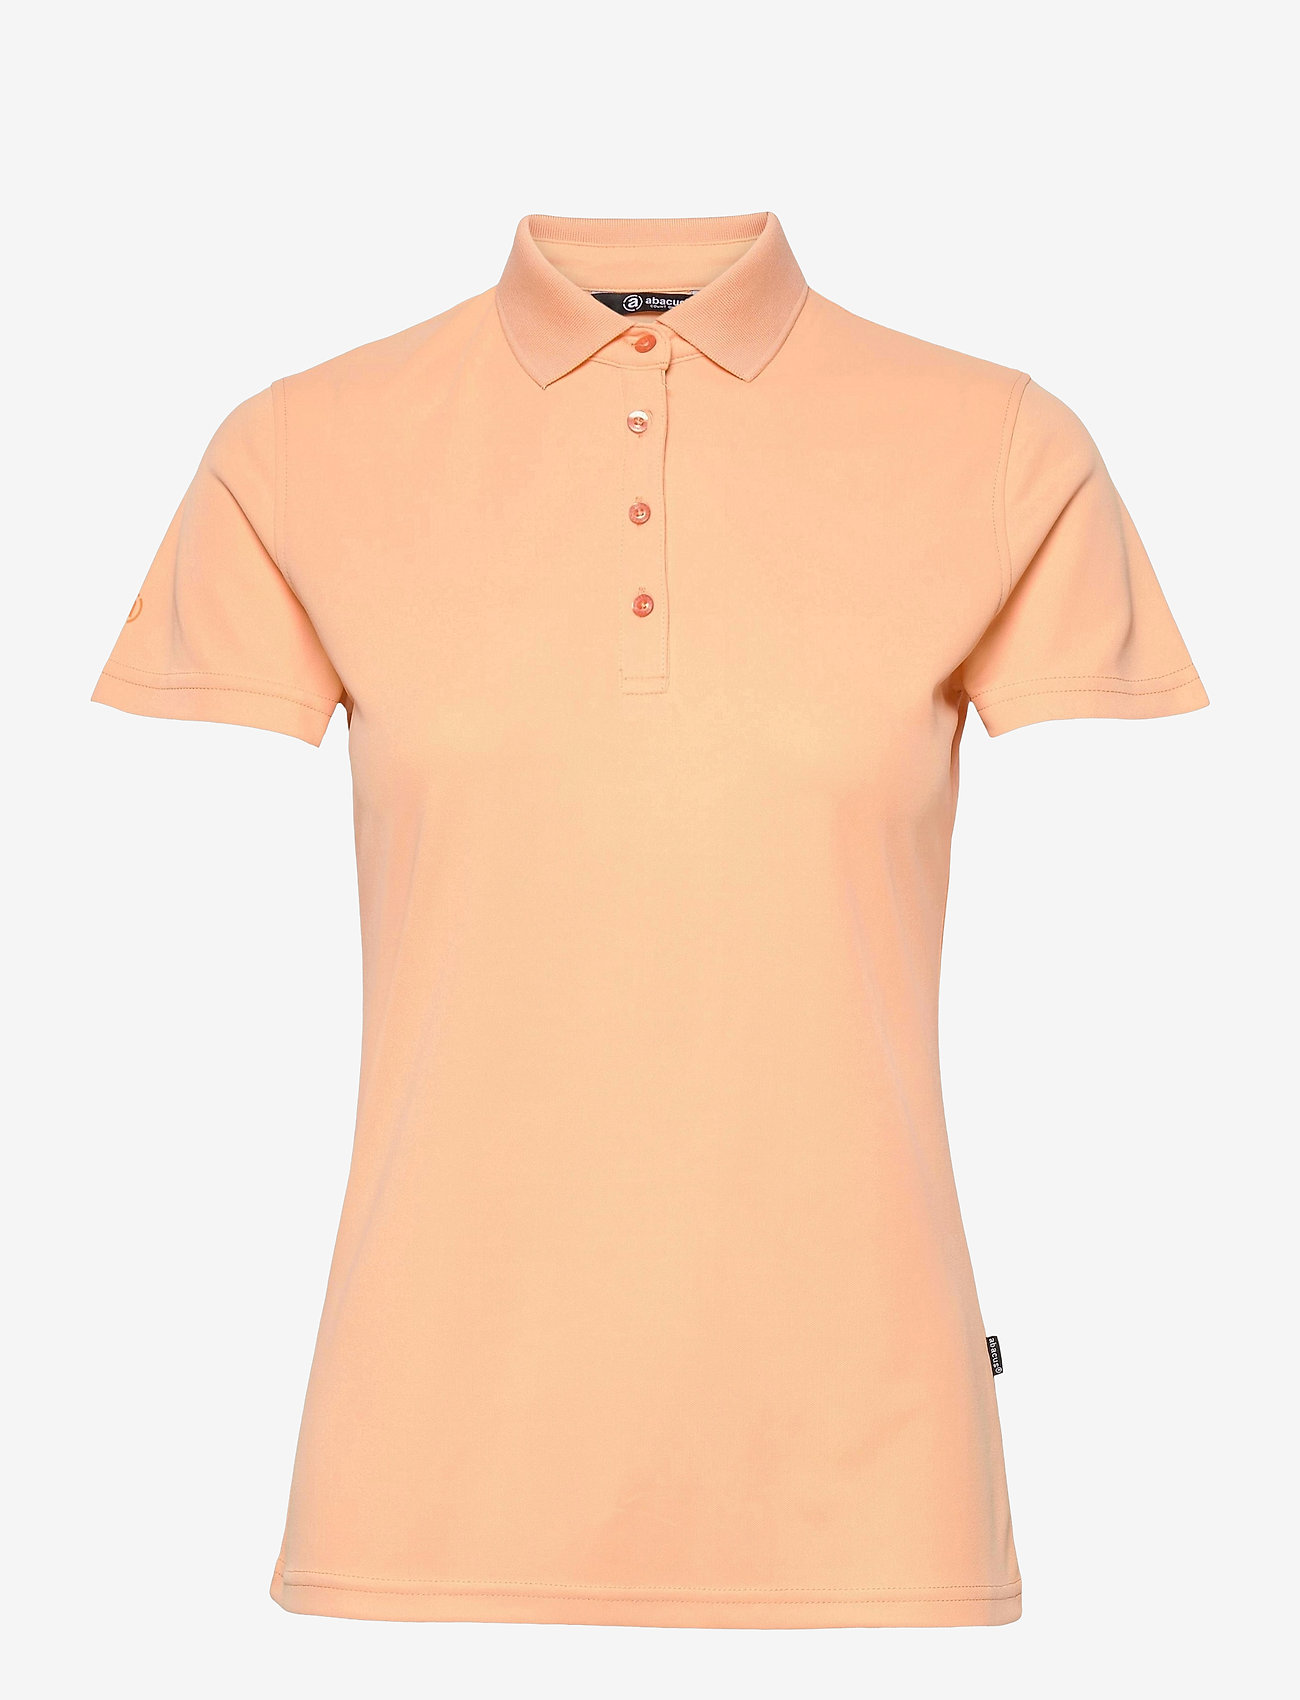 Abacus - Lds Cray drycool polo - polo's - apricot - 0